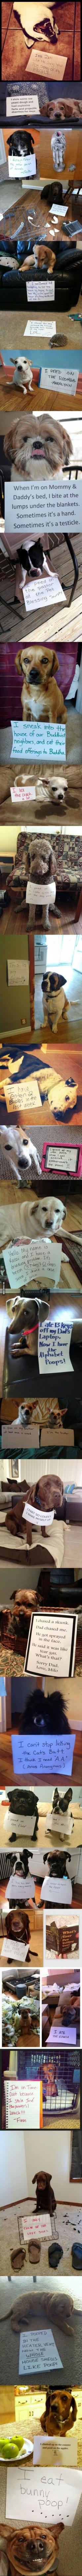 Im laughing so hard at these dog shamings... the picture of the last dog made me laugh the hardest: Funny Pets, Funny Animals, Laughing So Hard, Dog Shaming, Funny Dogs, Funny Pictures, Dog Confessions, Pet Shaming